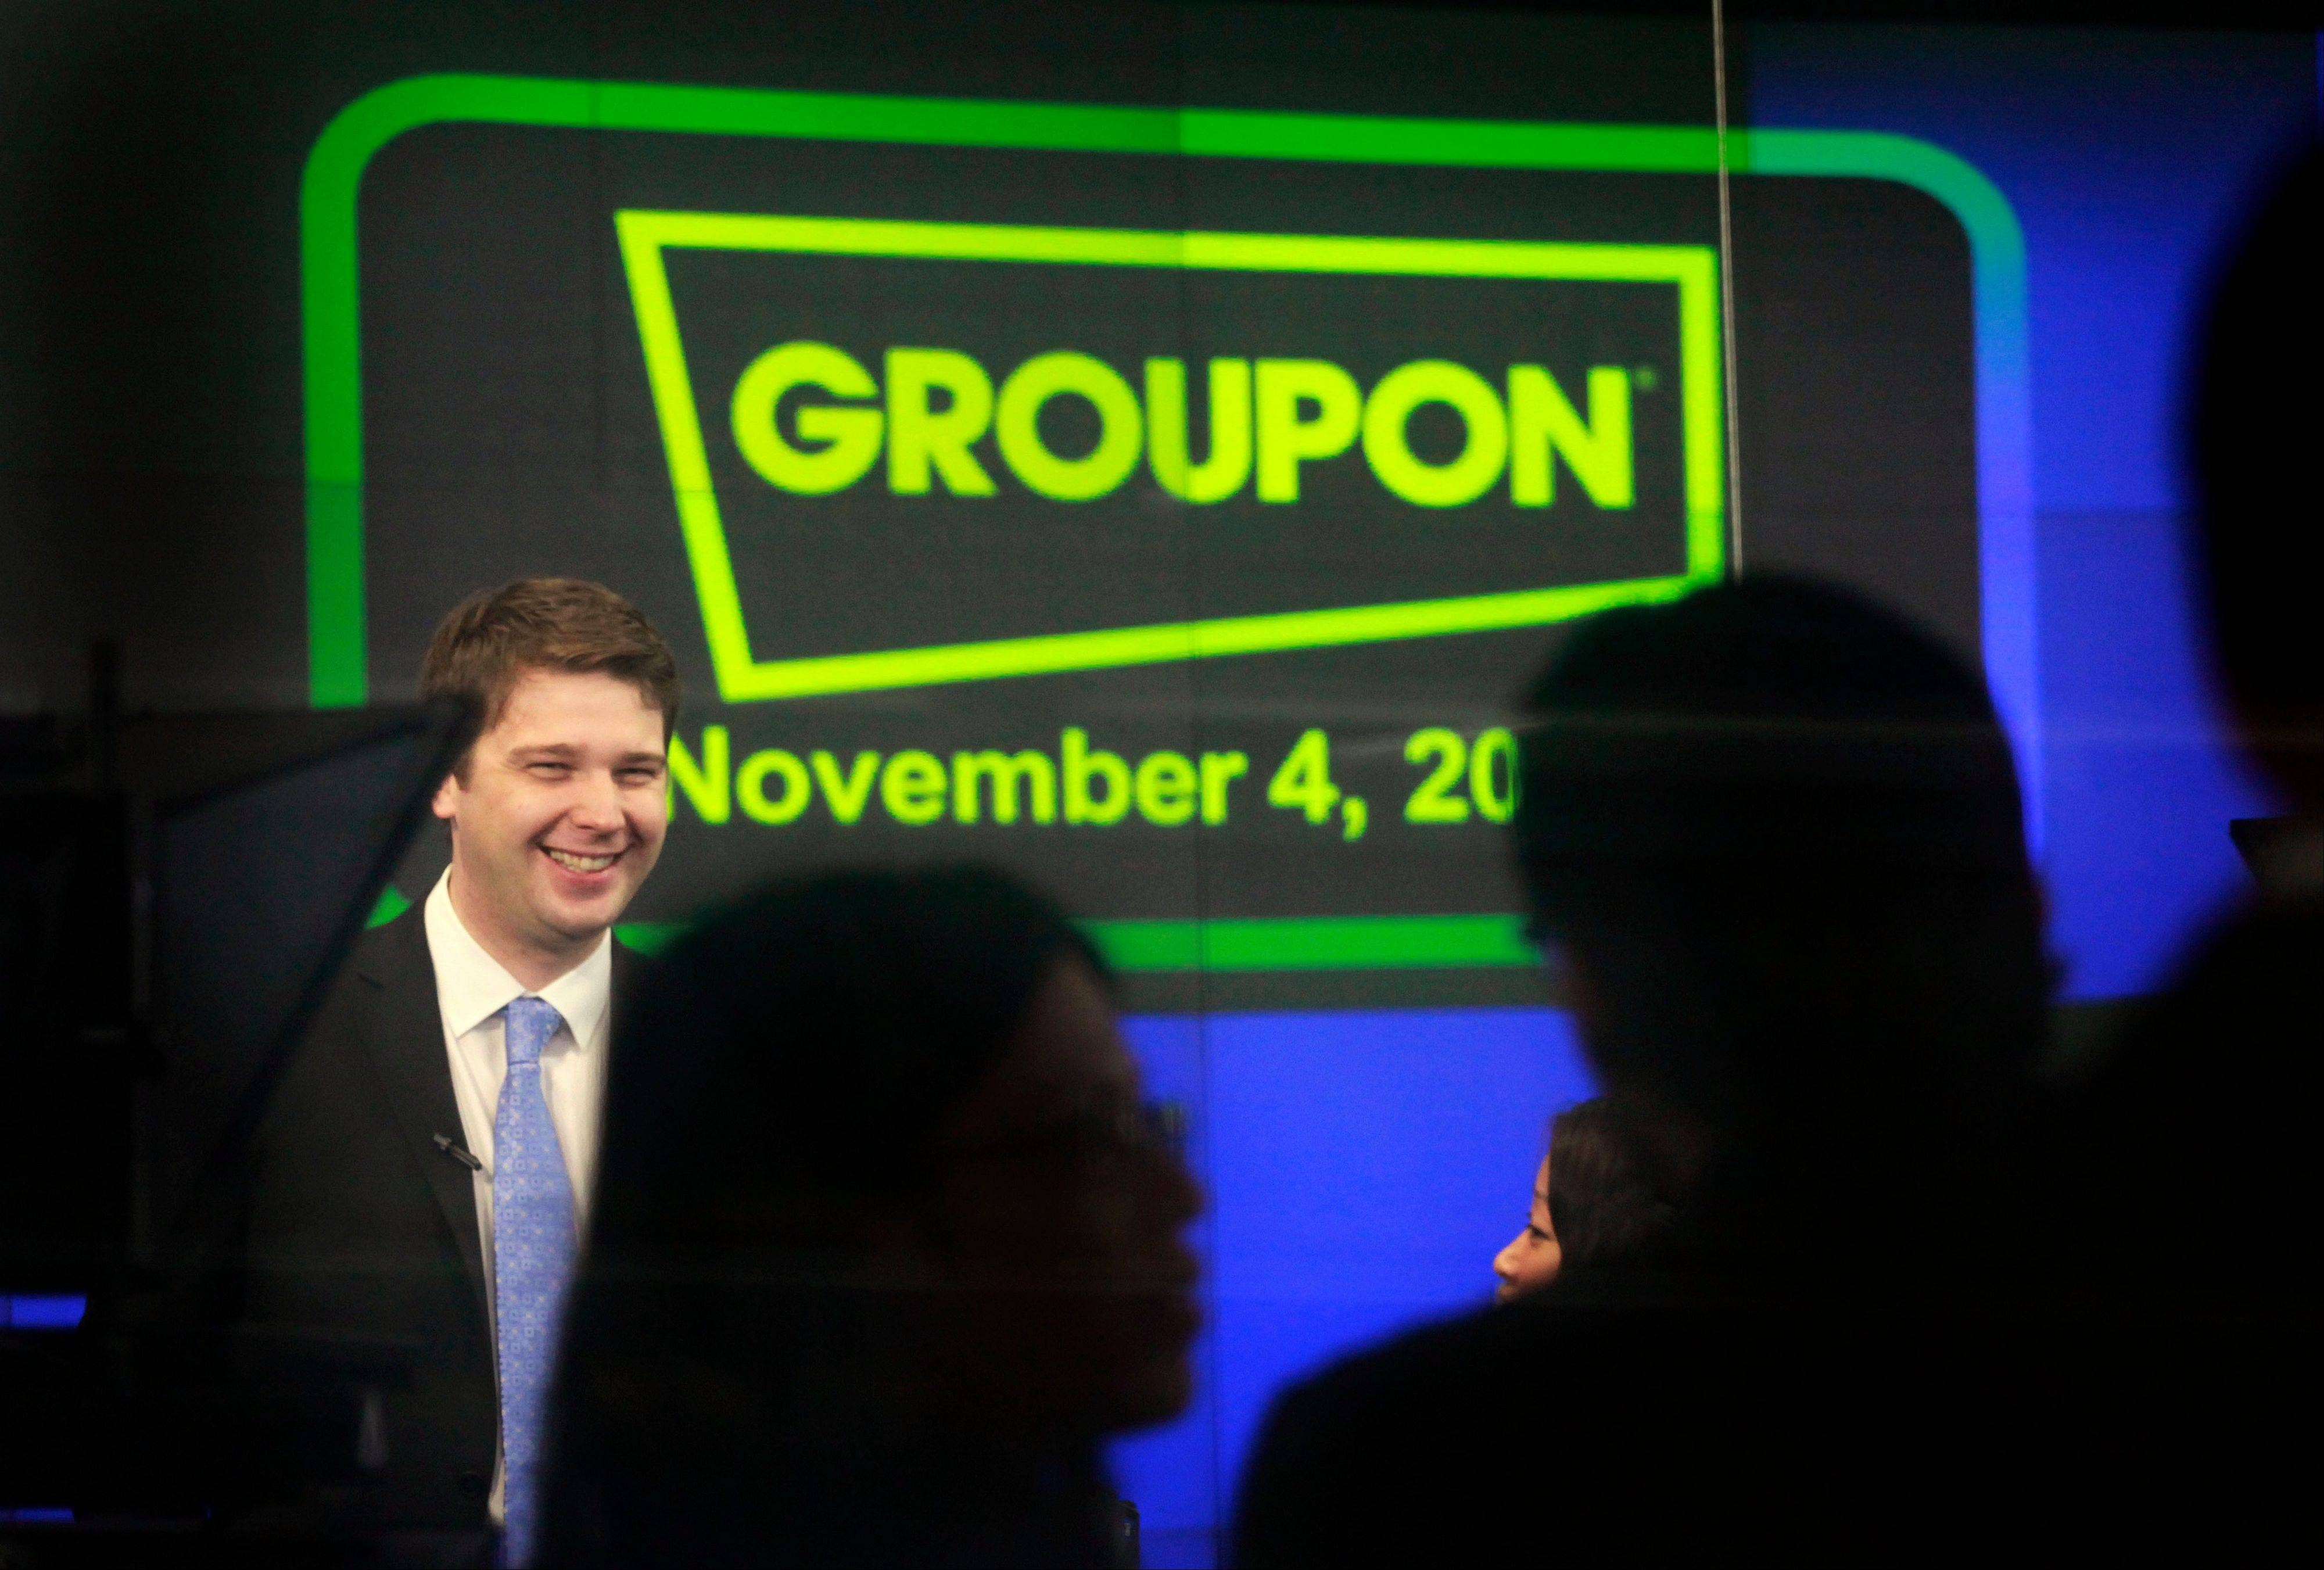 Associated Press/Nov. 4, 2011 Andrew Mason, founder and CEO of Groupon, attends his company's IPO at Nasdaq, in New York. Former Groupon CEO Mason announced several new ventures Friday, including indulging his inner rock star with an album of ìmotivational business music.